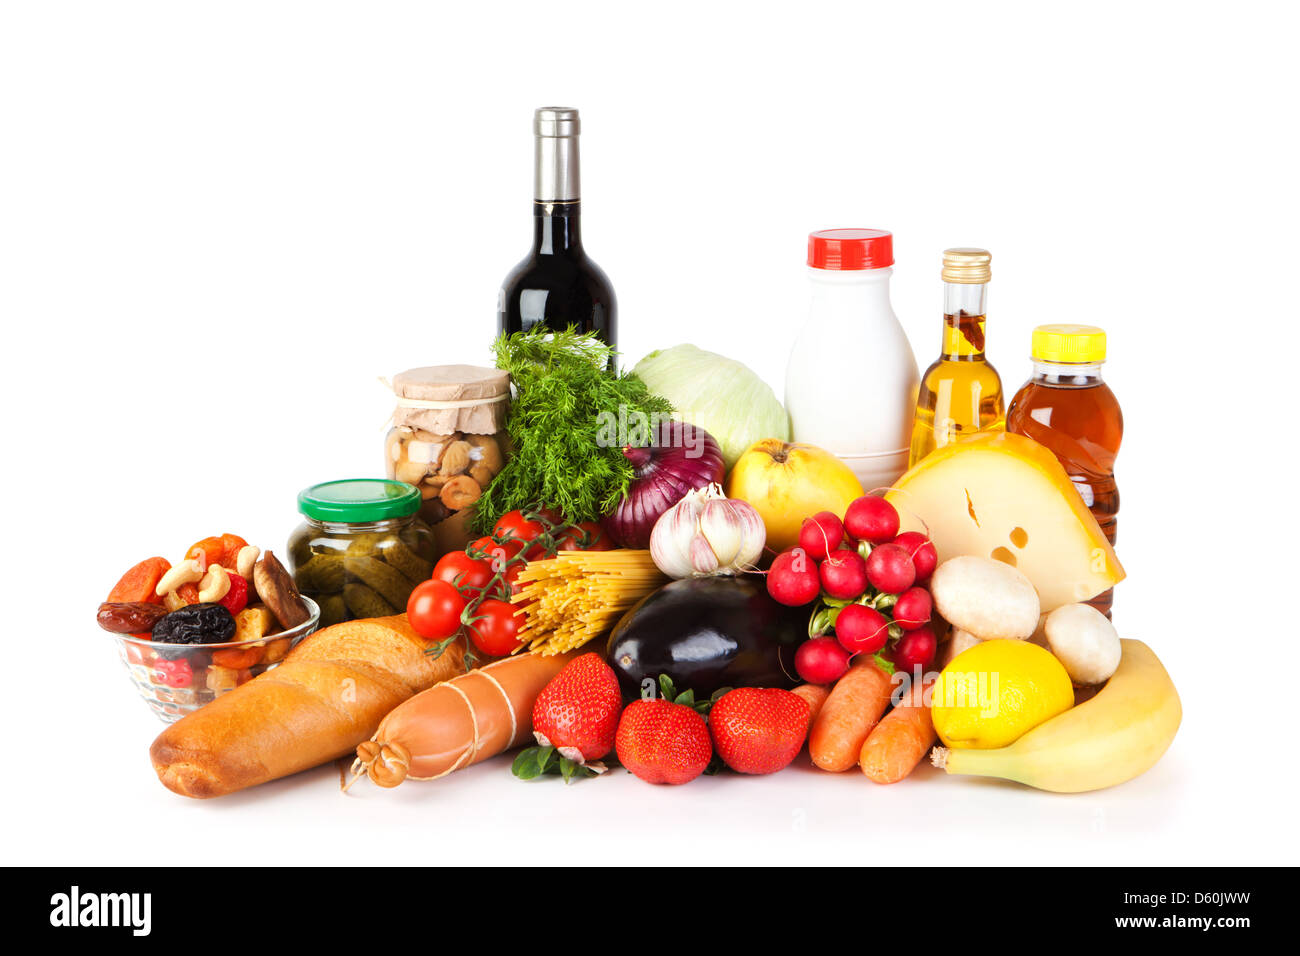 Foodstuff Stock Photos & Foodstuff Stock Images - Alamy